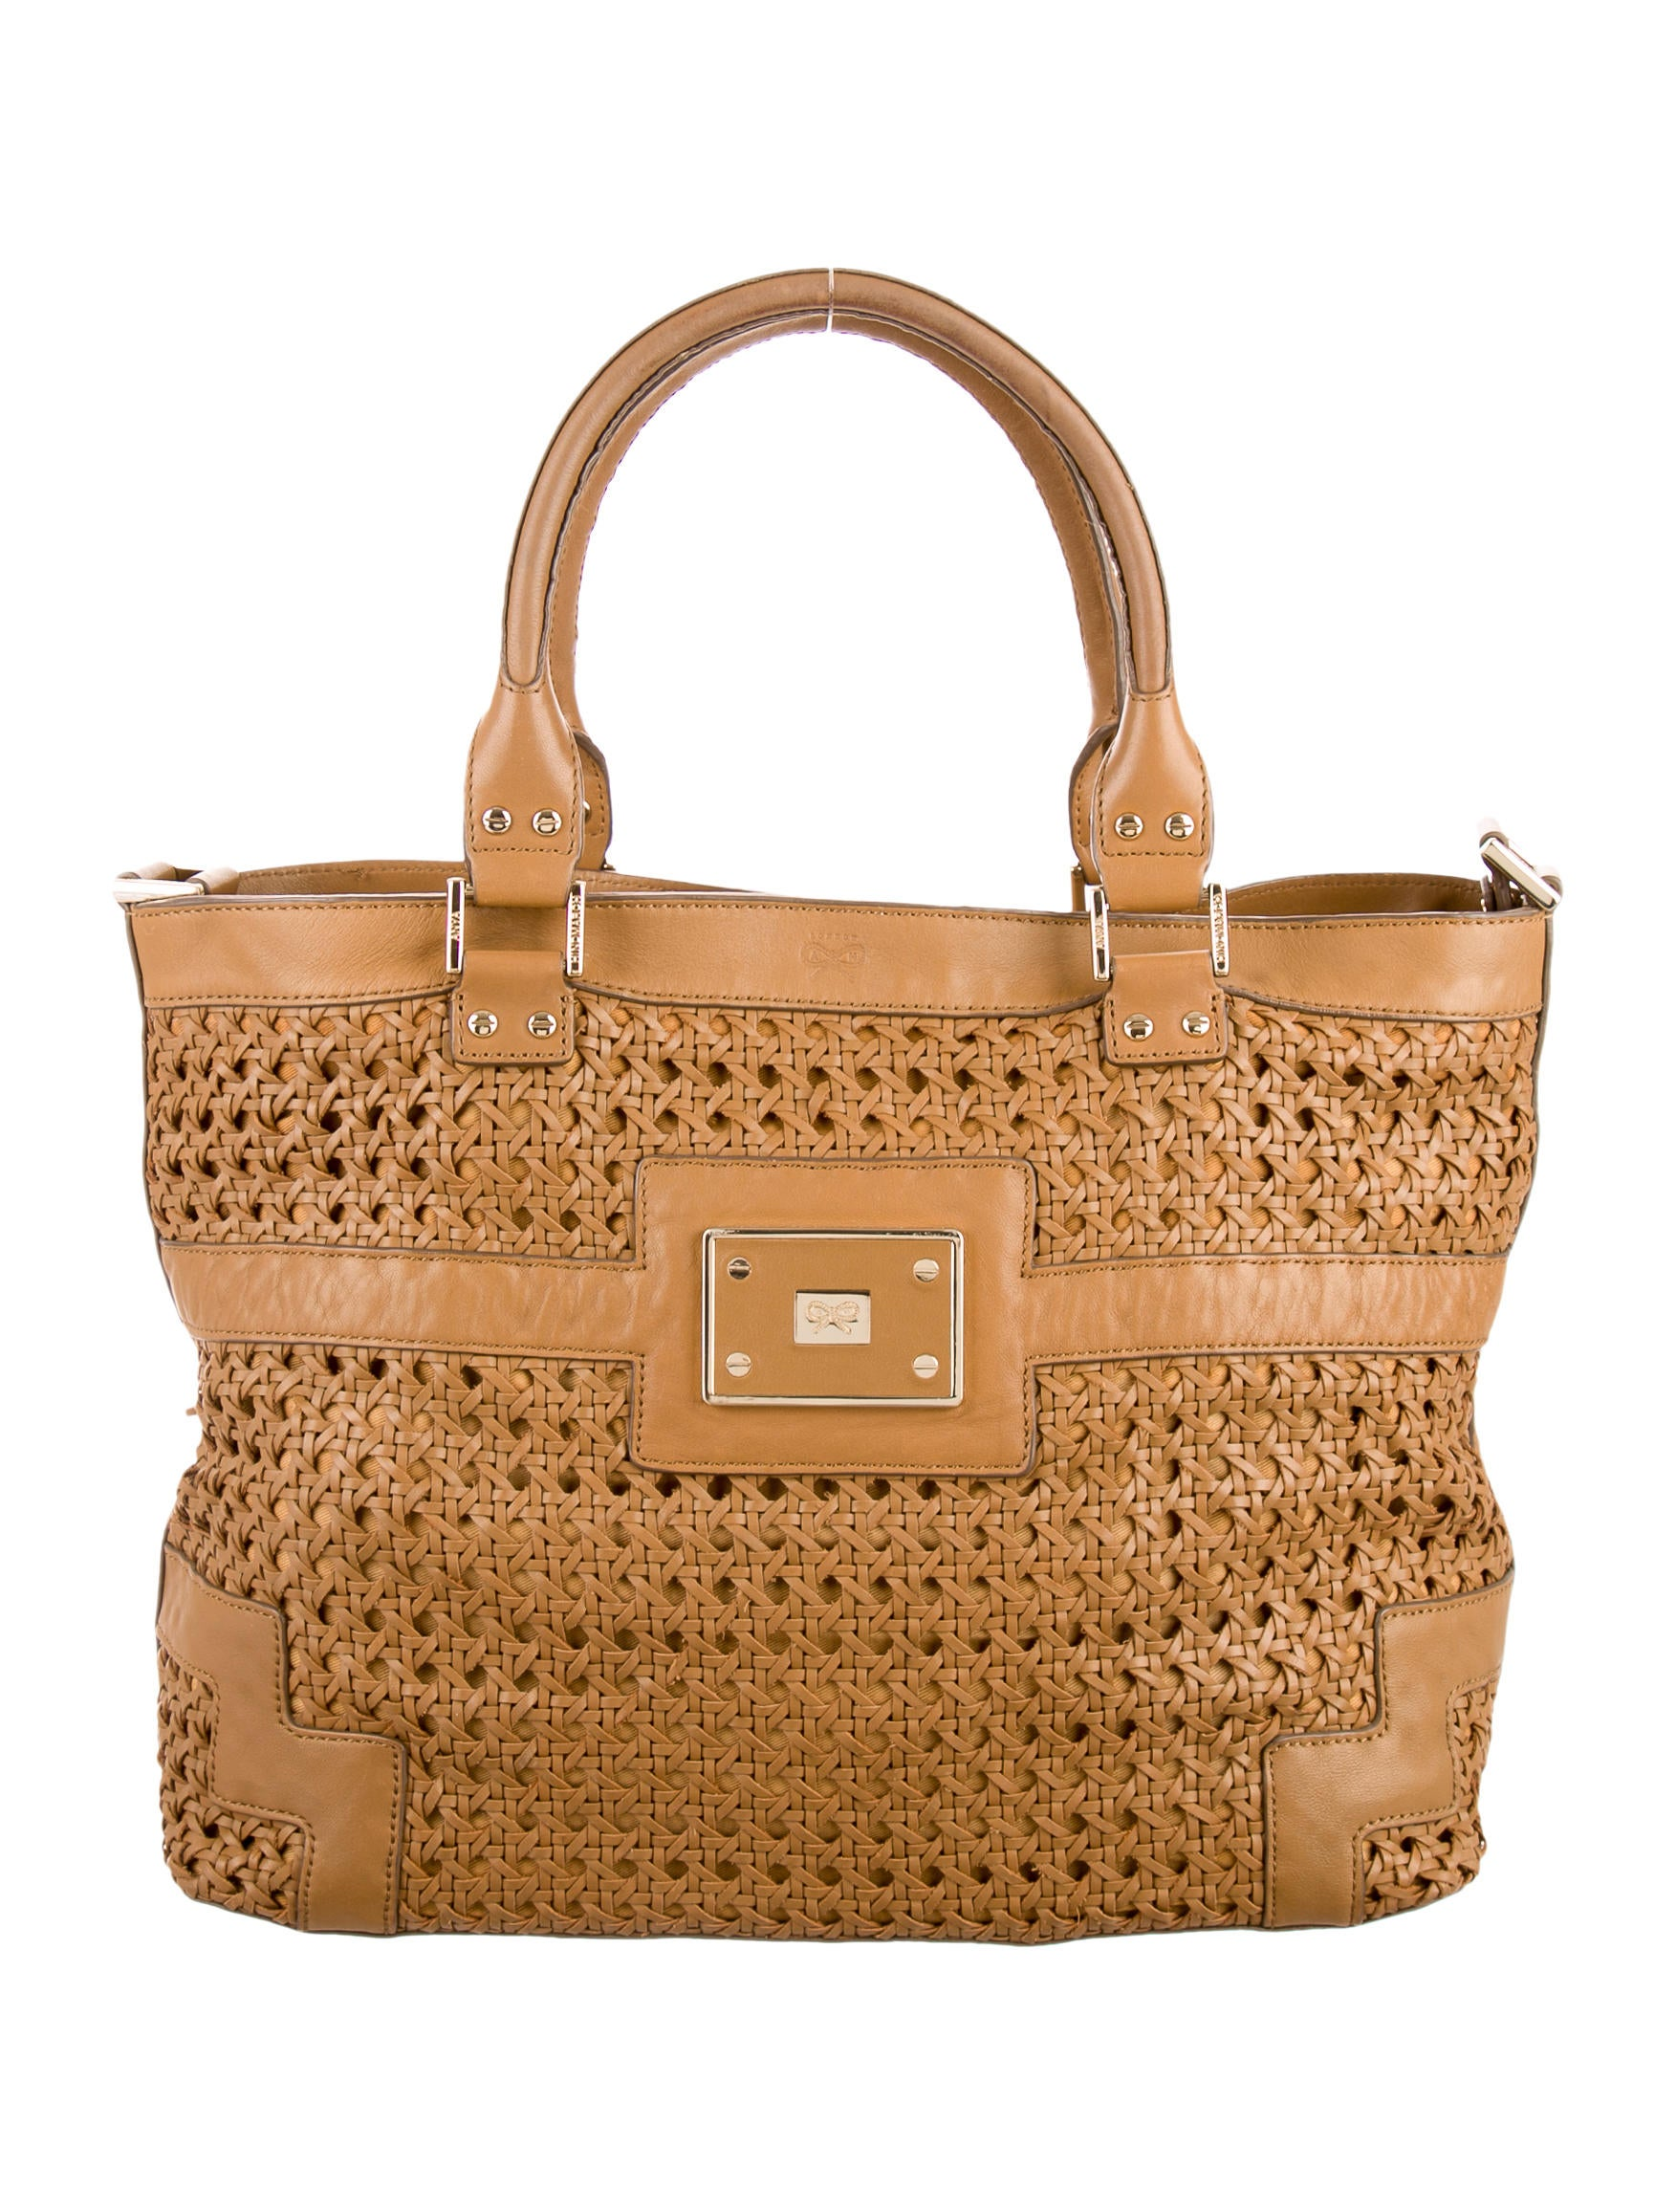 Anya Hindmarch Woven Leather Bag Handbags Wah22190